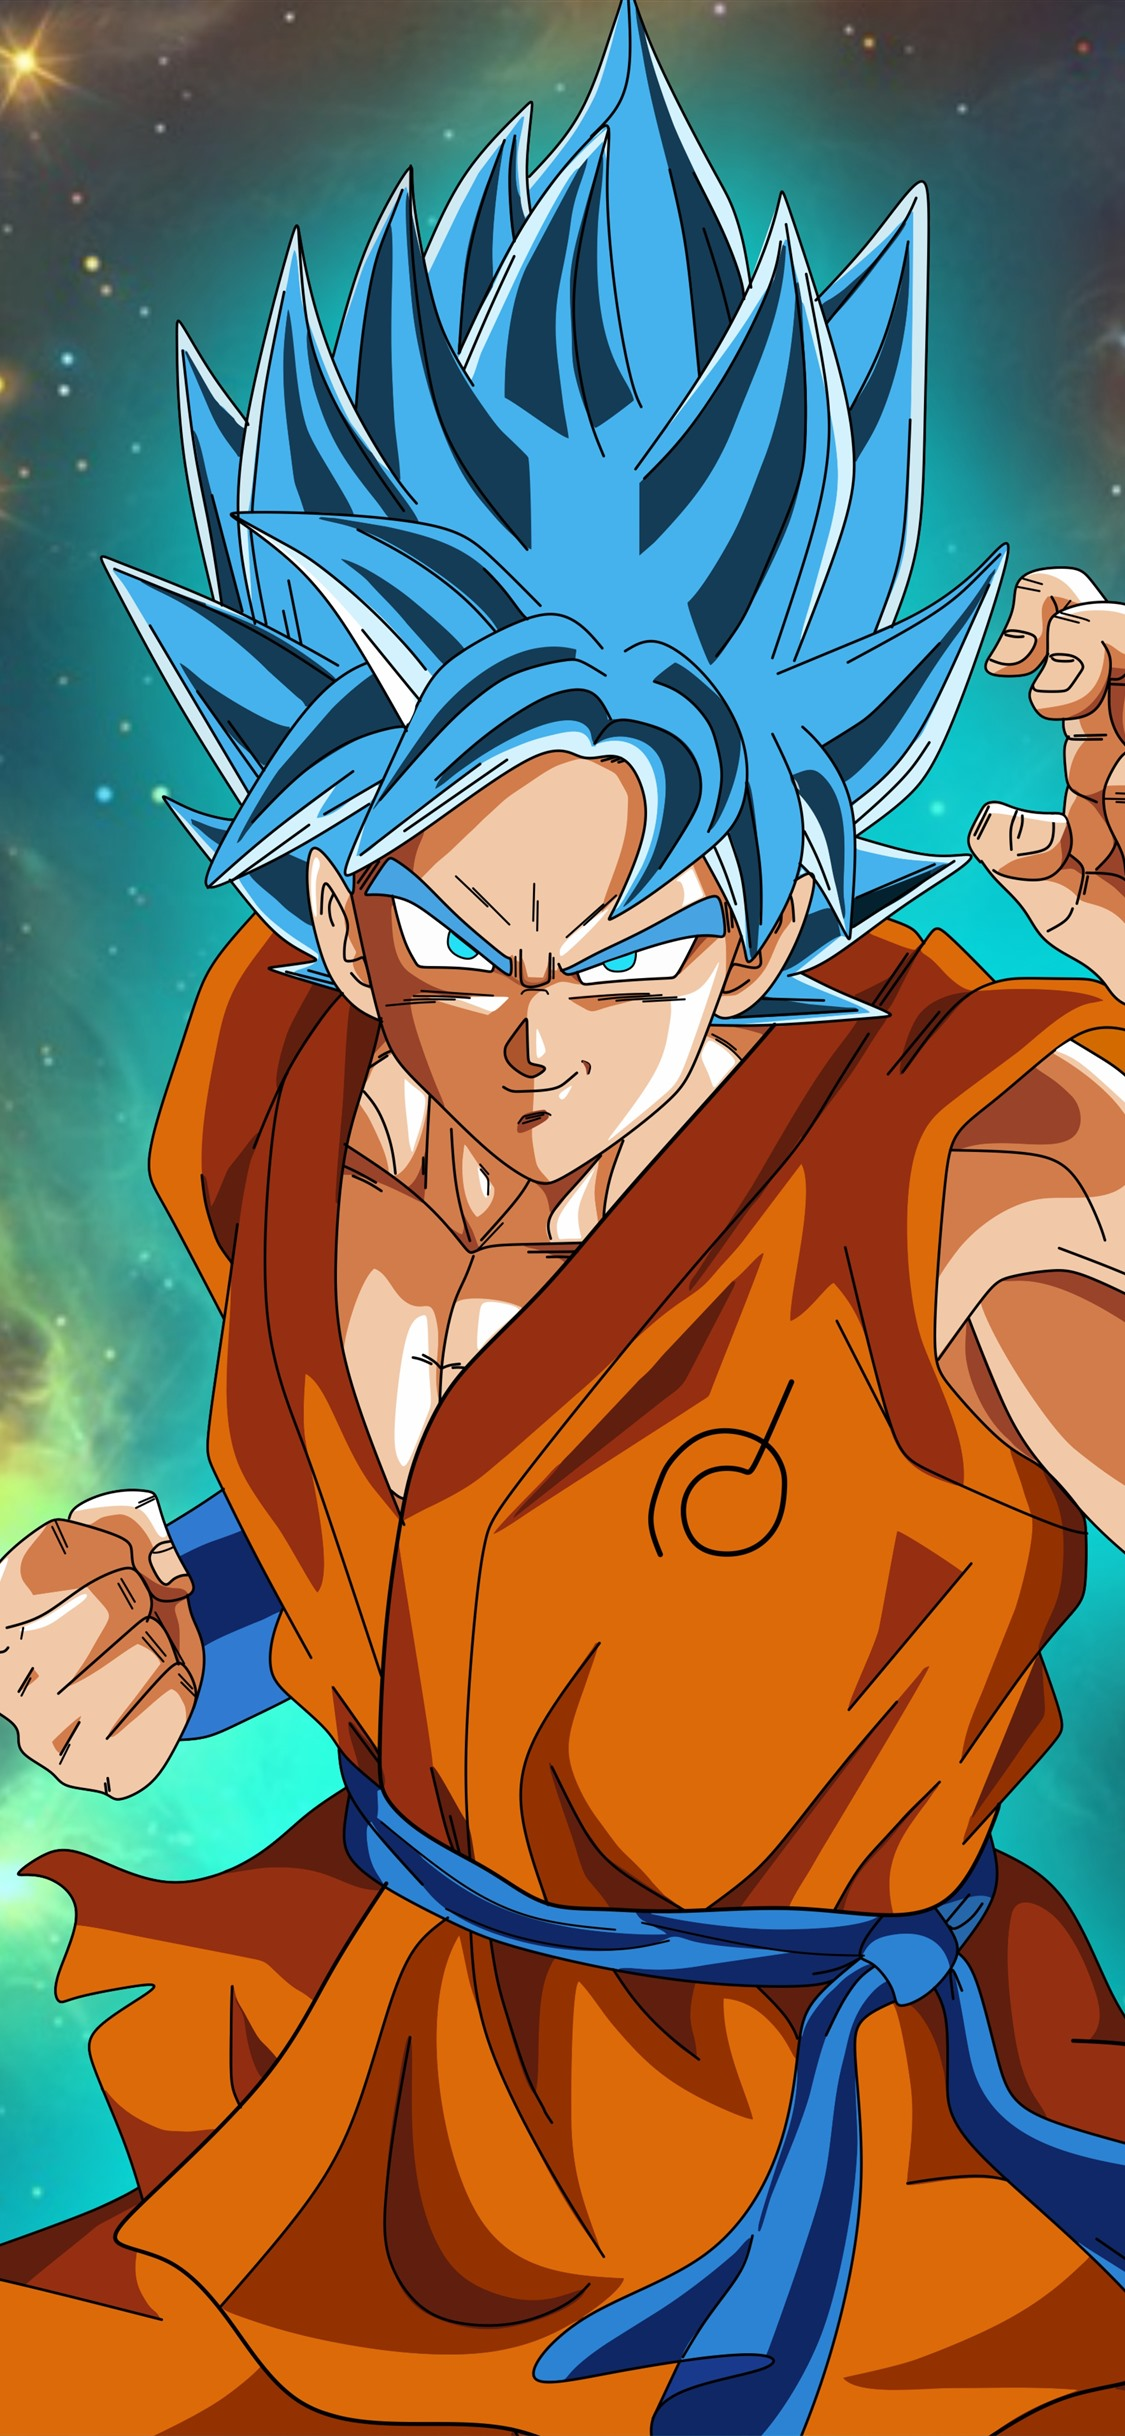 Dragon Ball Super Goku Anime 1242x2688 Iphone 11 Pro Xs Max Wallpaper Background Picture Image